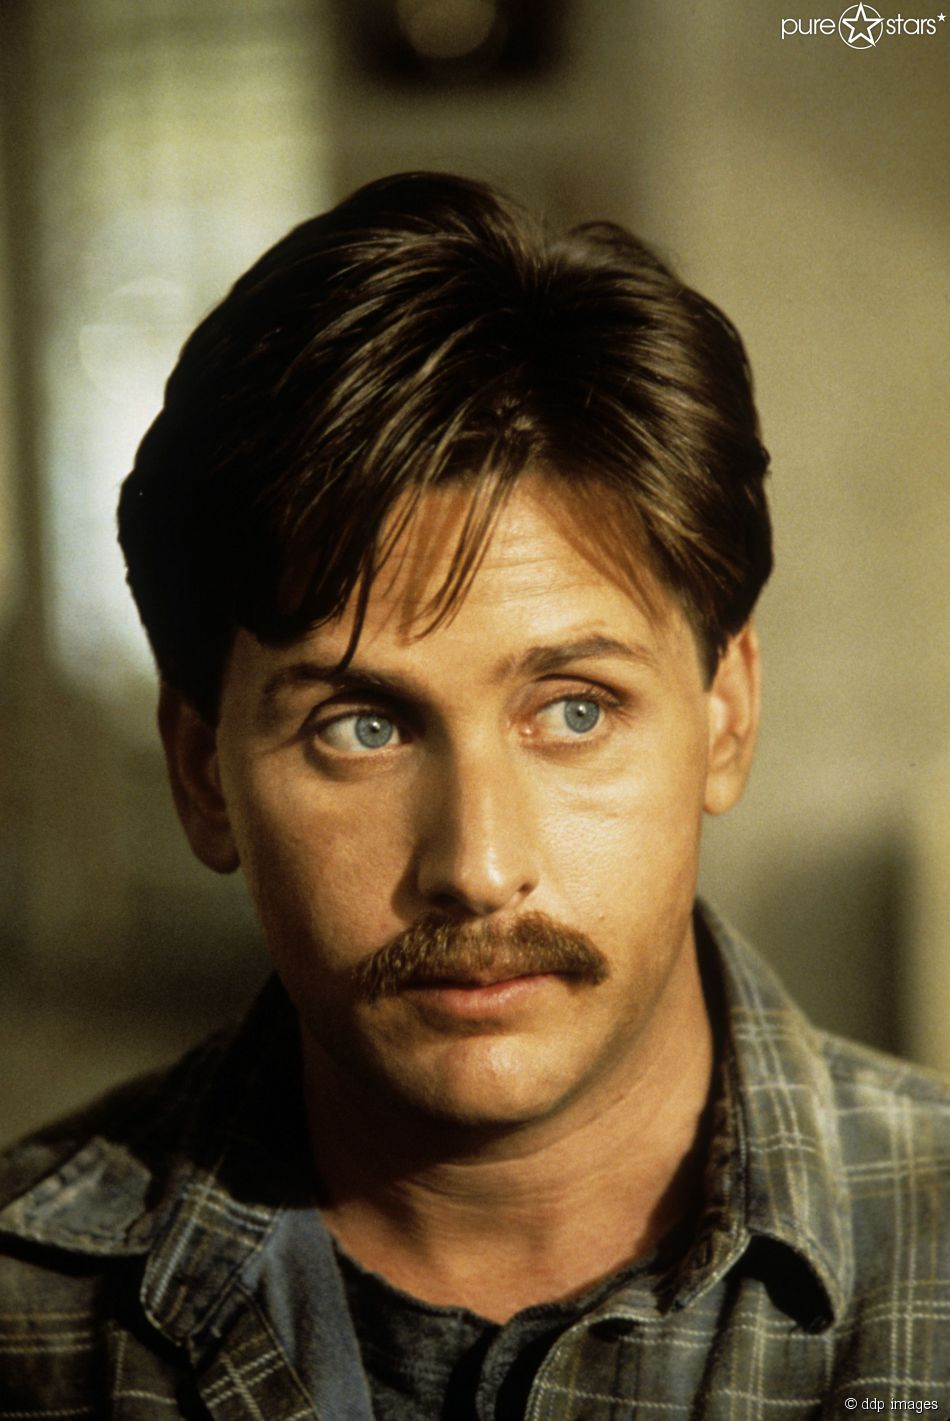 emilio estevez the breakfast clubemilio estevez bones, emilio estevez 2016, emilio estevez the breakfast club, emilio estevez and michael j fox, emilio estevez wikipedia, emilio estevez photo, emilio estevez natal chart, emilio estevez and charlie sheen, emilio estevez height, emilio estevez movies, emilio estevez tf2, emilio estevez 1980, emilio estevez samuel l jackson, emilio estevez interview breakfast club, emilio estevez wife, emilio estevez twitter, emilio estevez duck, emilio estevez and ally sheedy, emilio estevez komedie